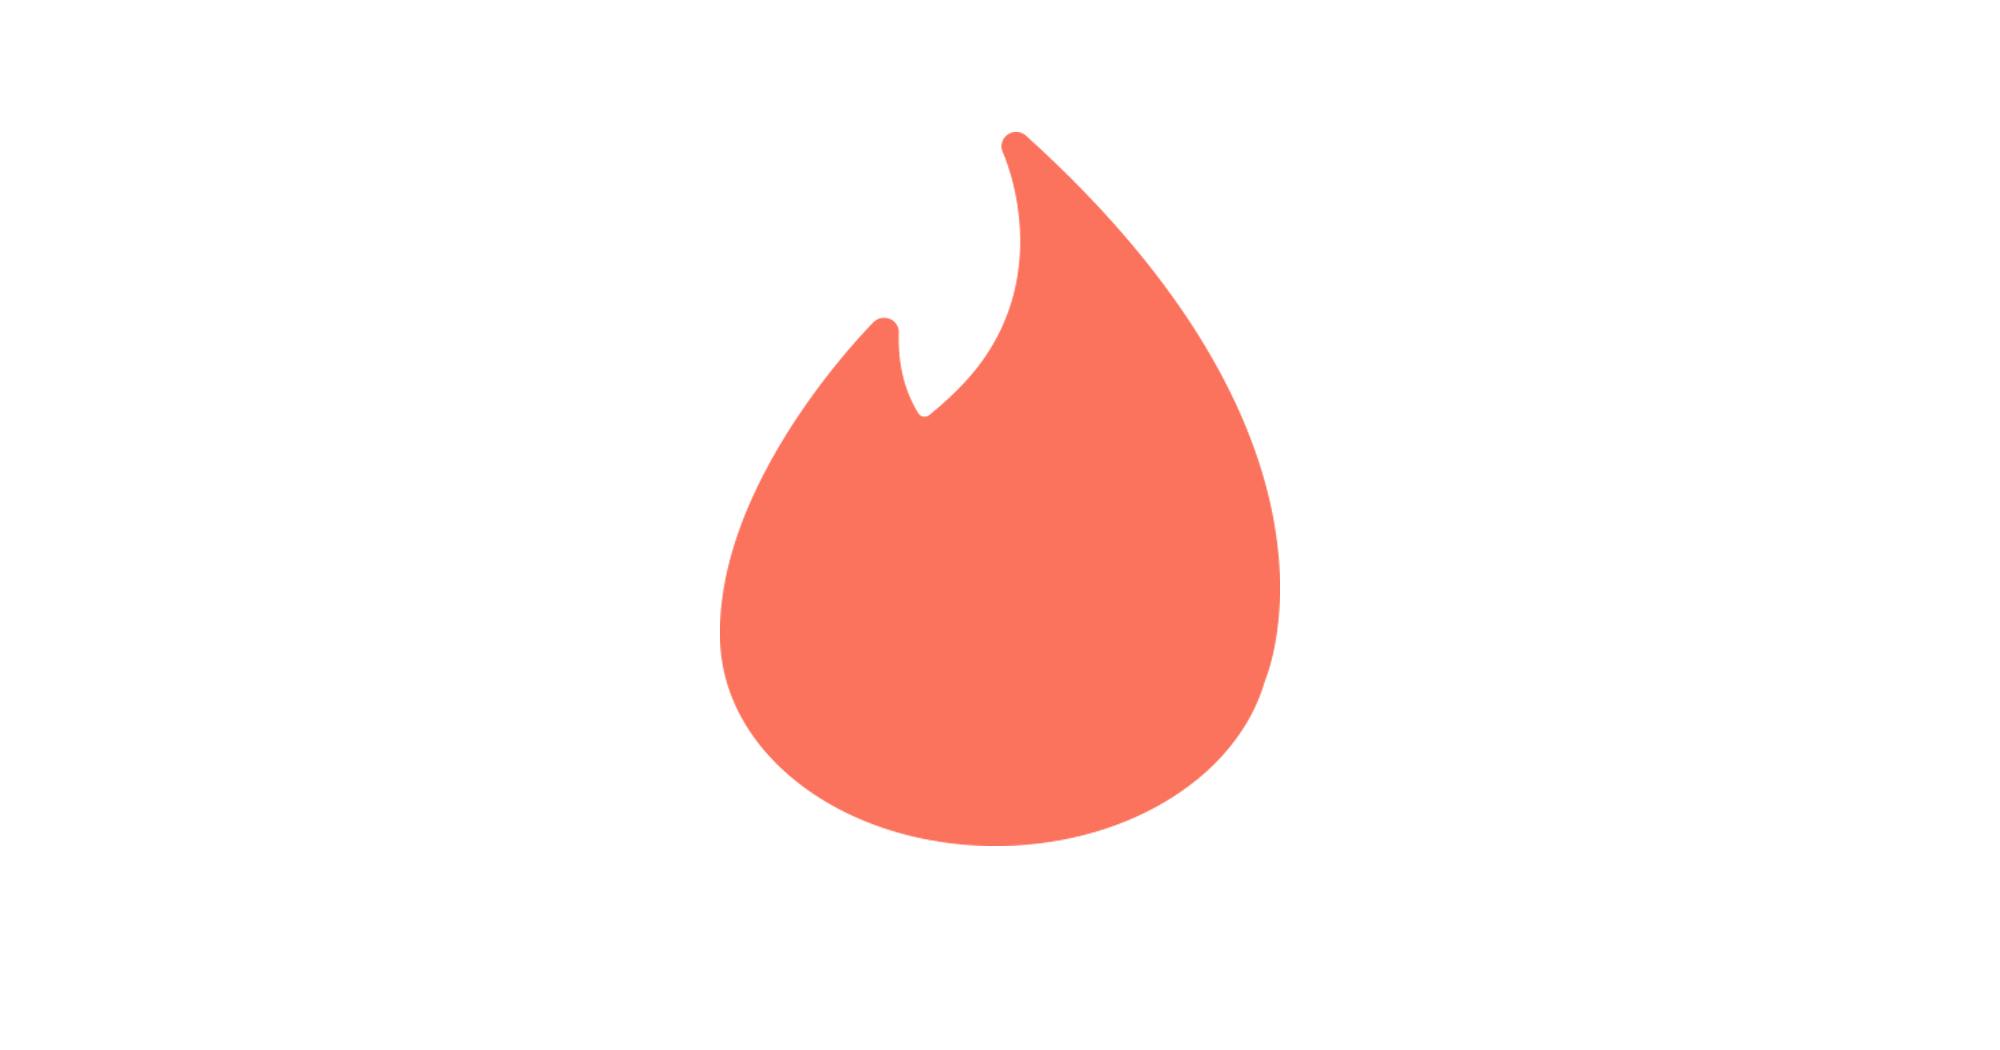 transgender dating app uk Tinder ceo sean rad announced last week that the app will expand its options and features to better serve its transgender users.